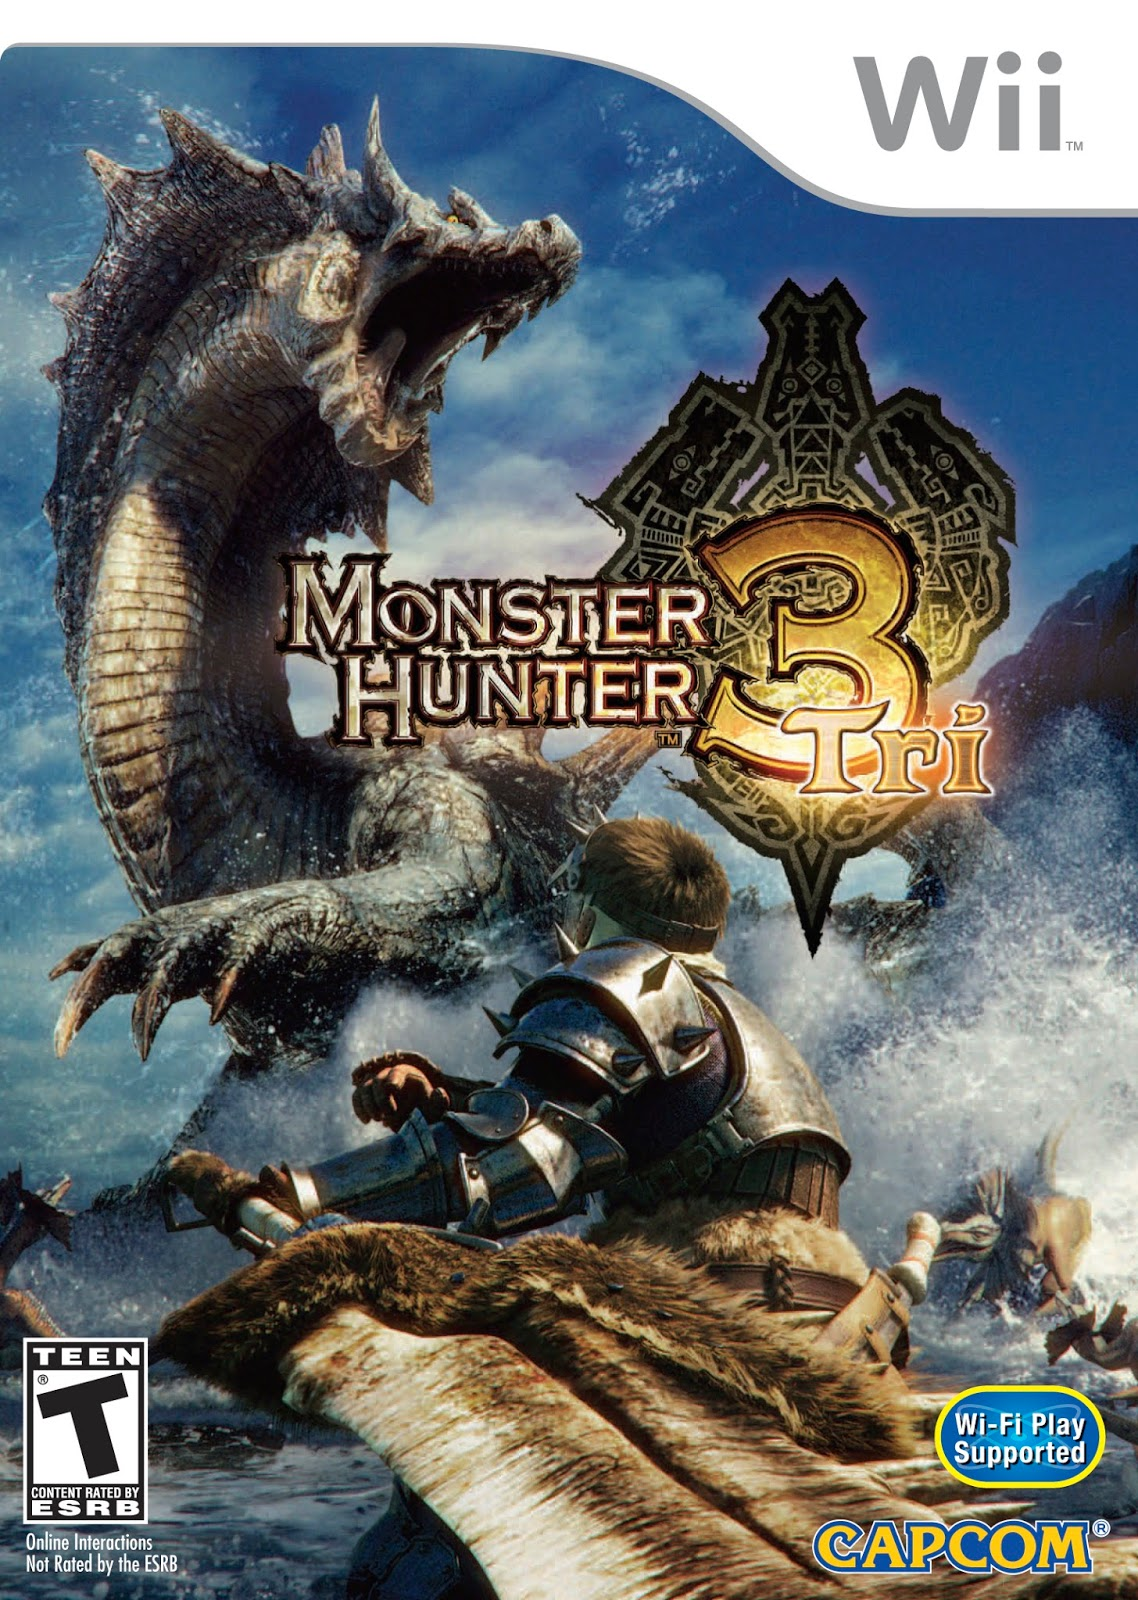 Monster Hunter Tri Usa Download For Pc Dolphin Emulator Wii - trusite